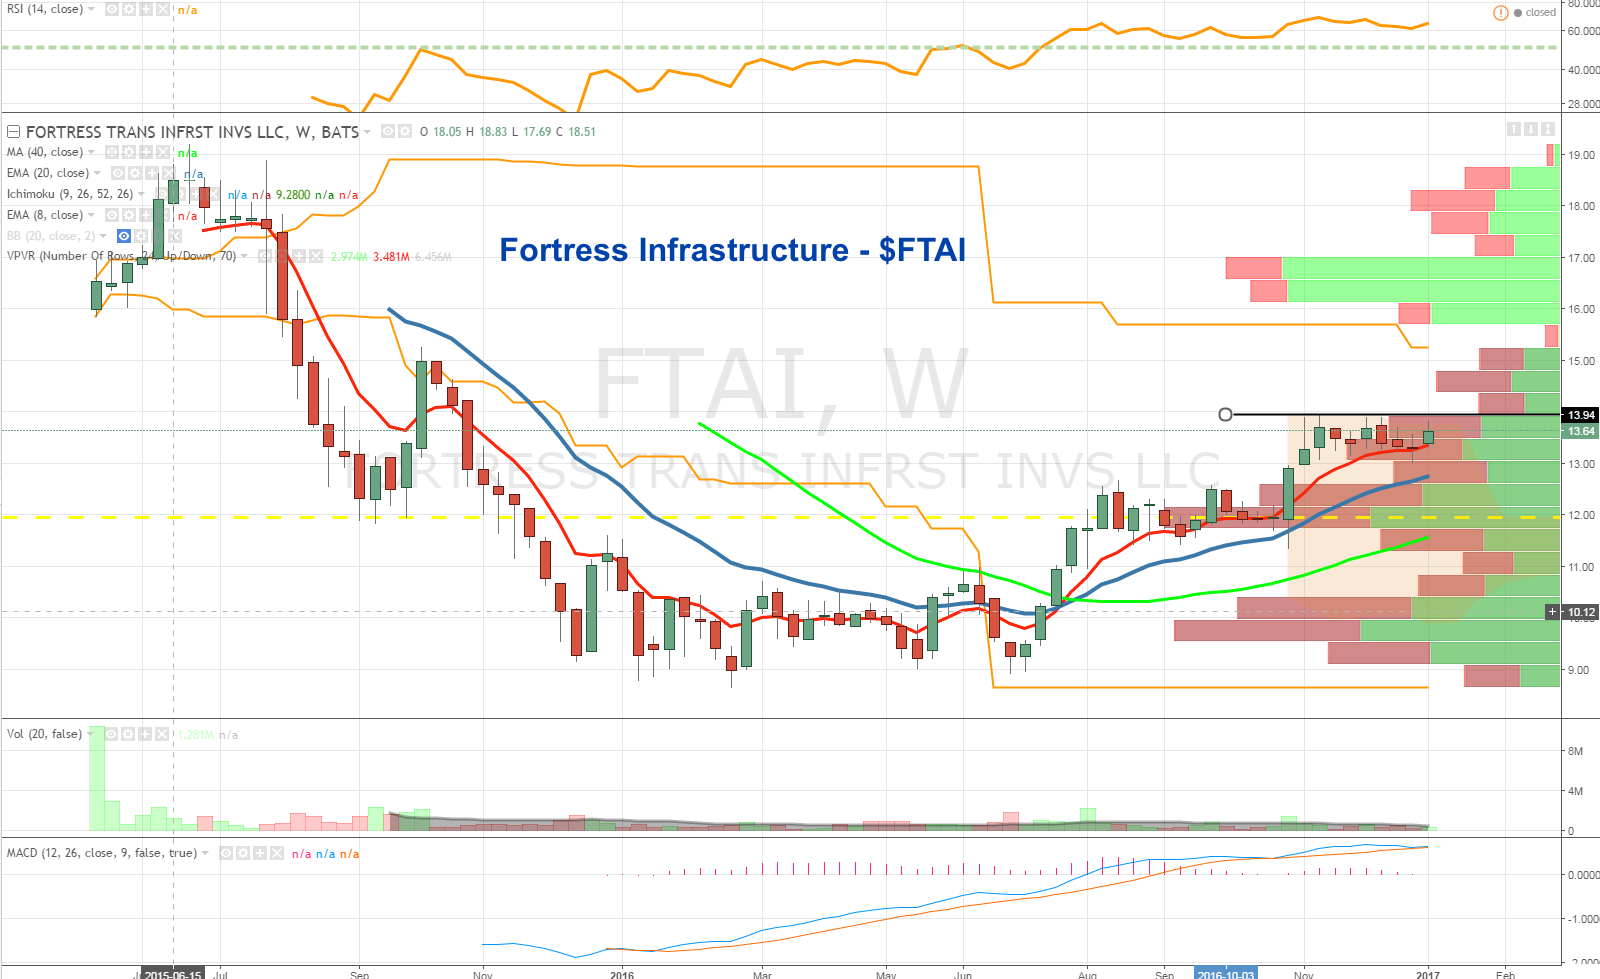 fortress-transportation-and-infrastructure-investors-ftai-stock-chart-analysis-january-2017